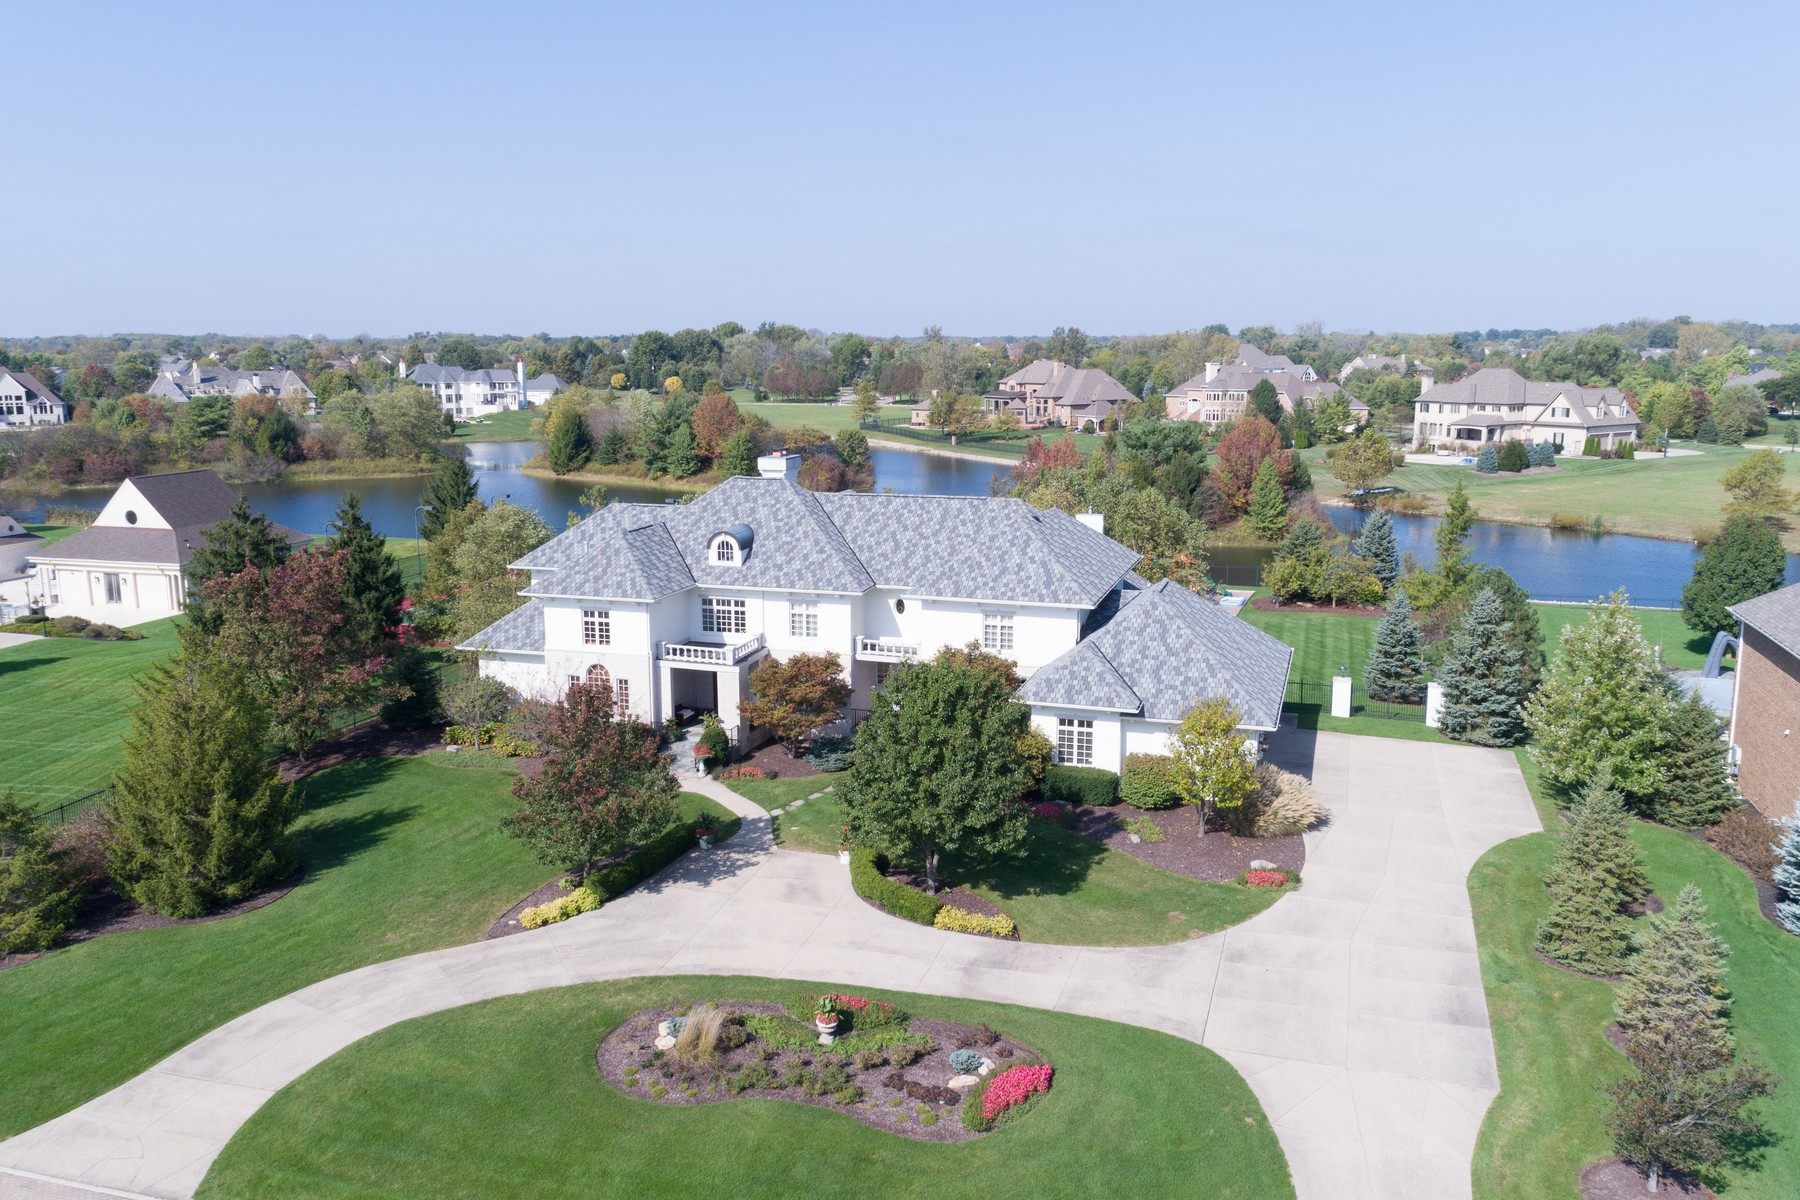 Single Family Home for Sale at Exquisite Estate in Bridlebourne 3528 Hintocks Circle, Carmel, Indiana, 46032 United States